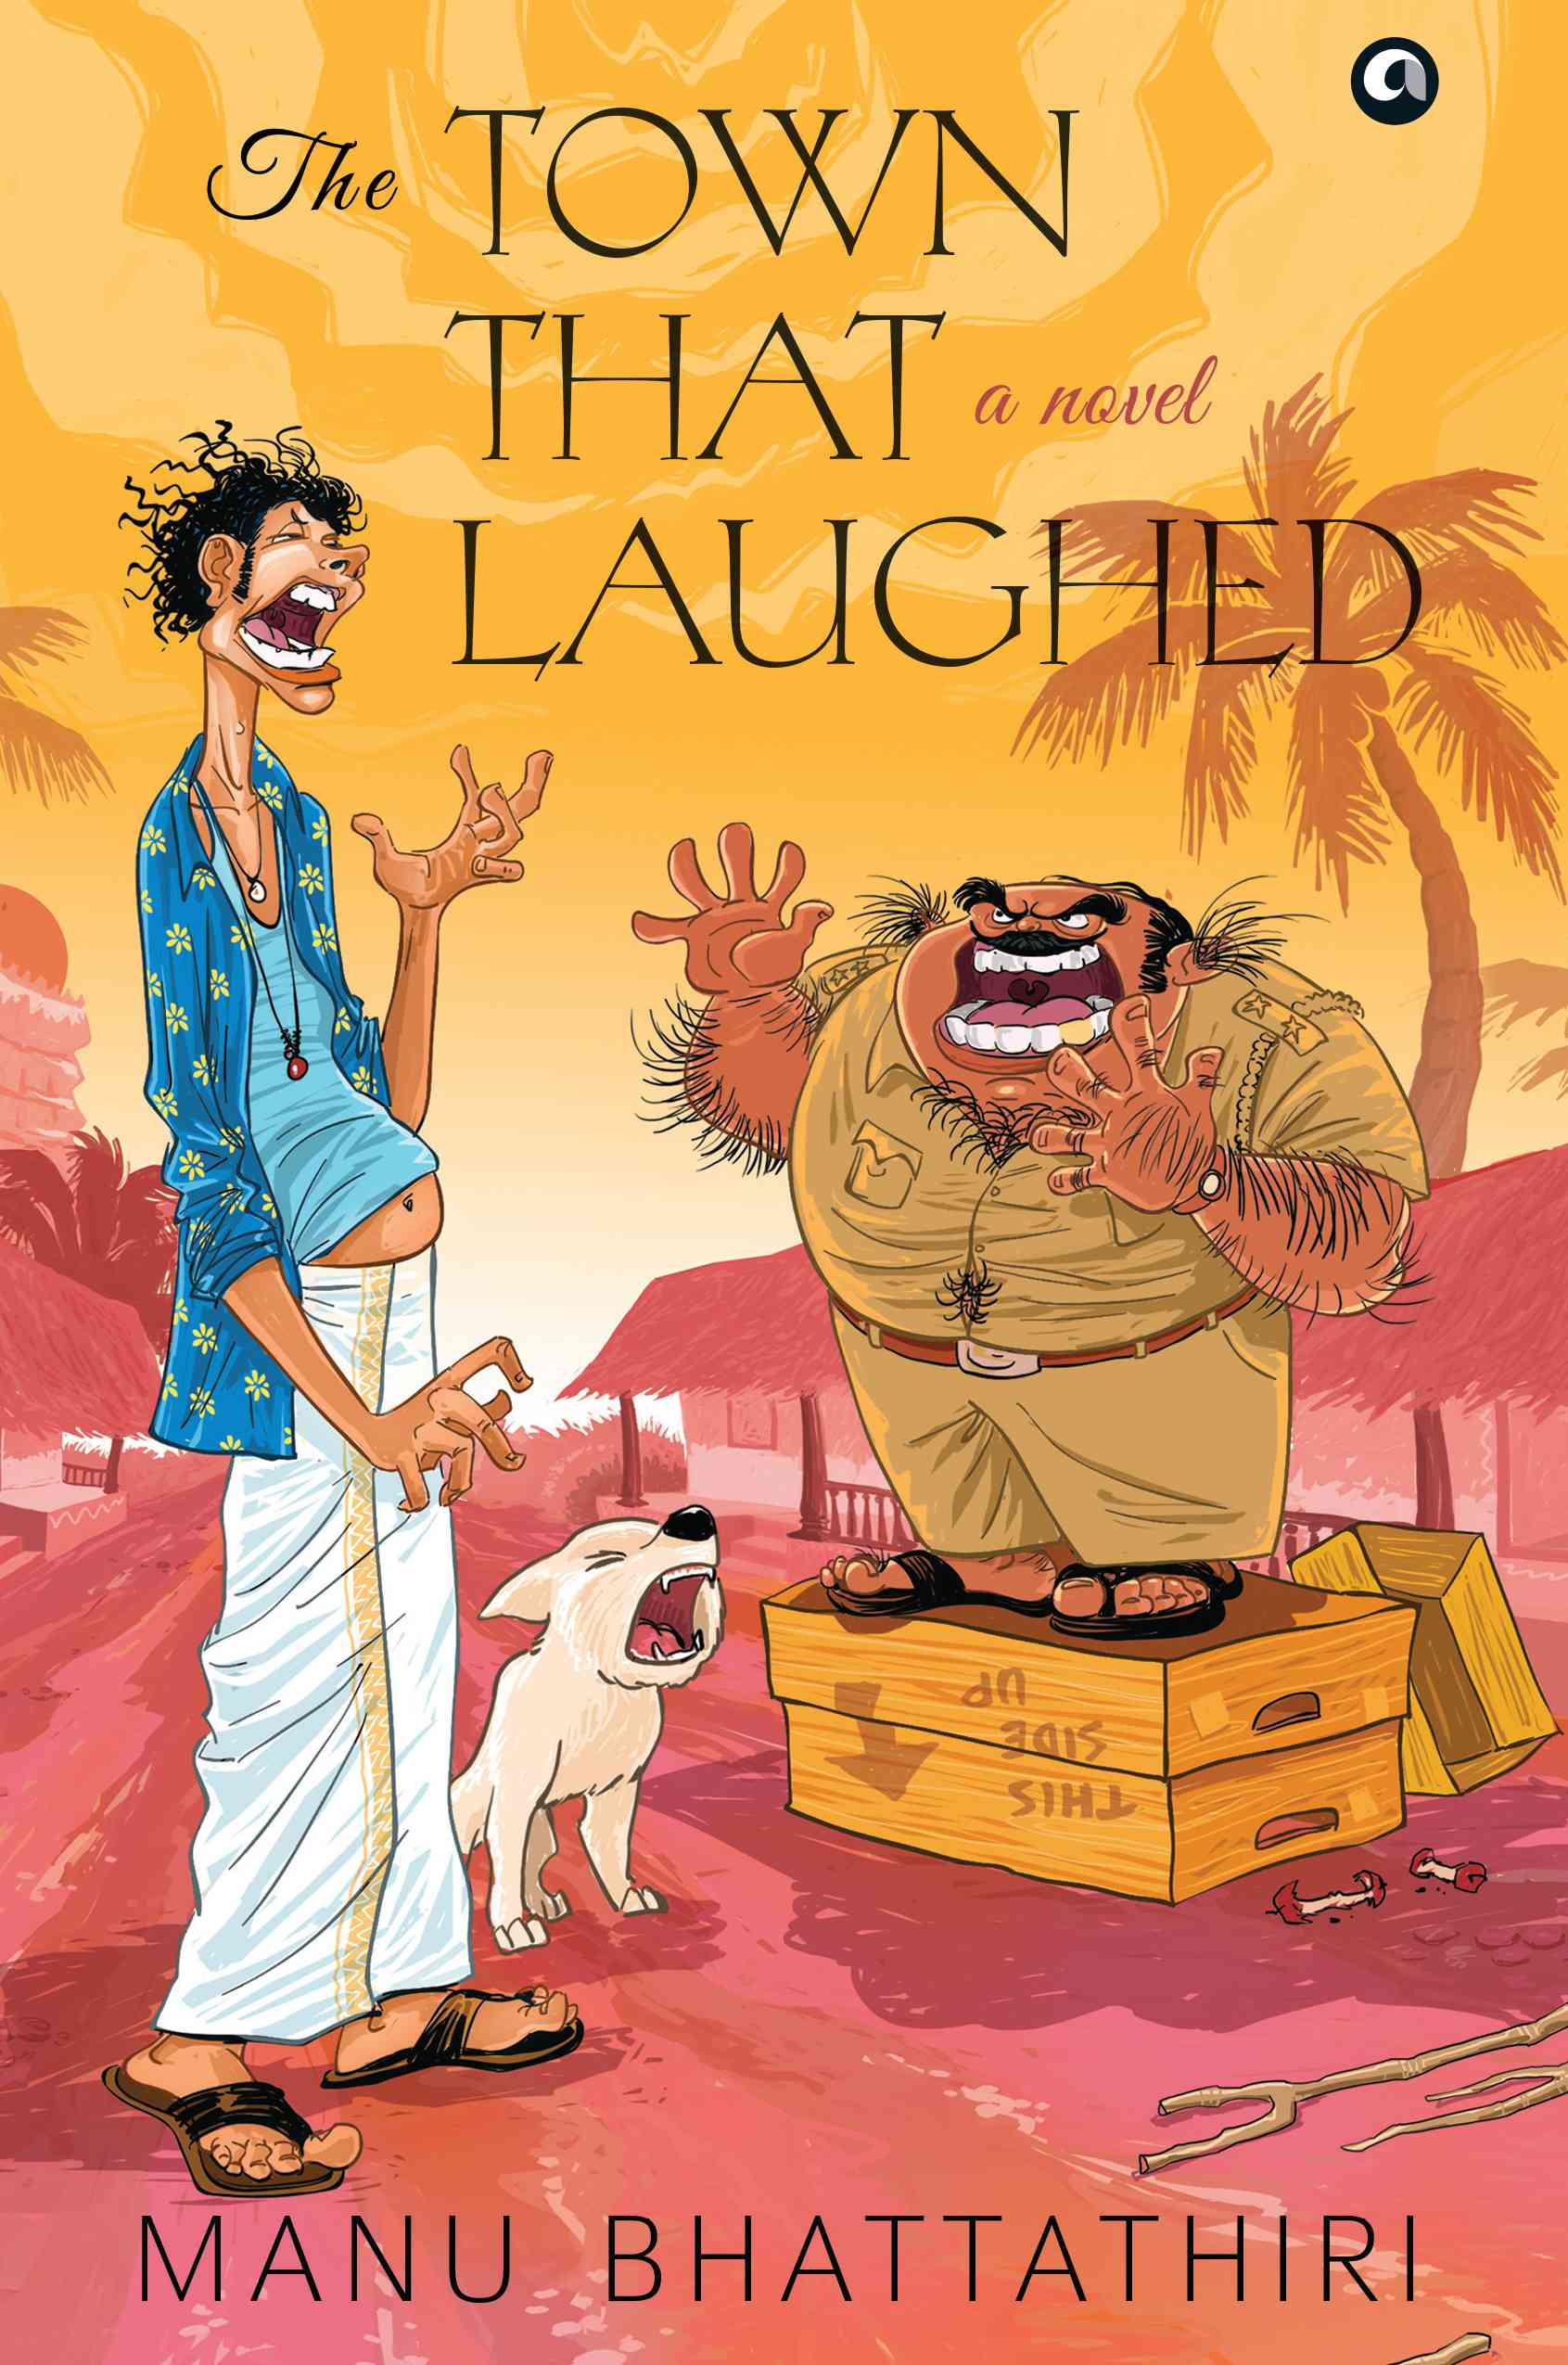 The Town That Laughed': Manu Bhattathiri's fictional town of